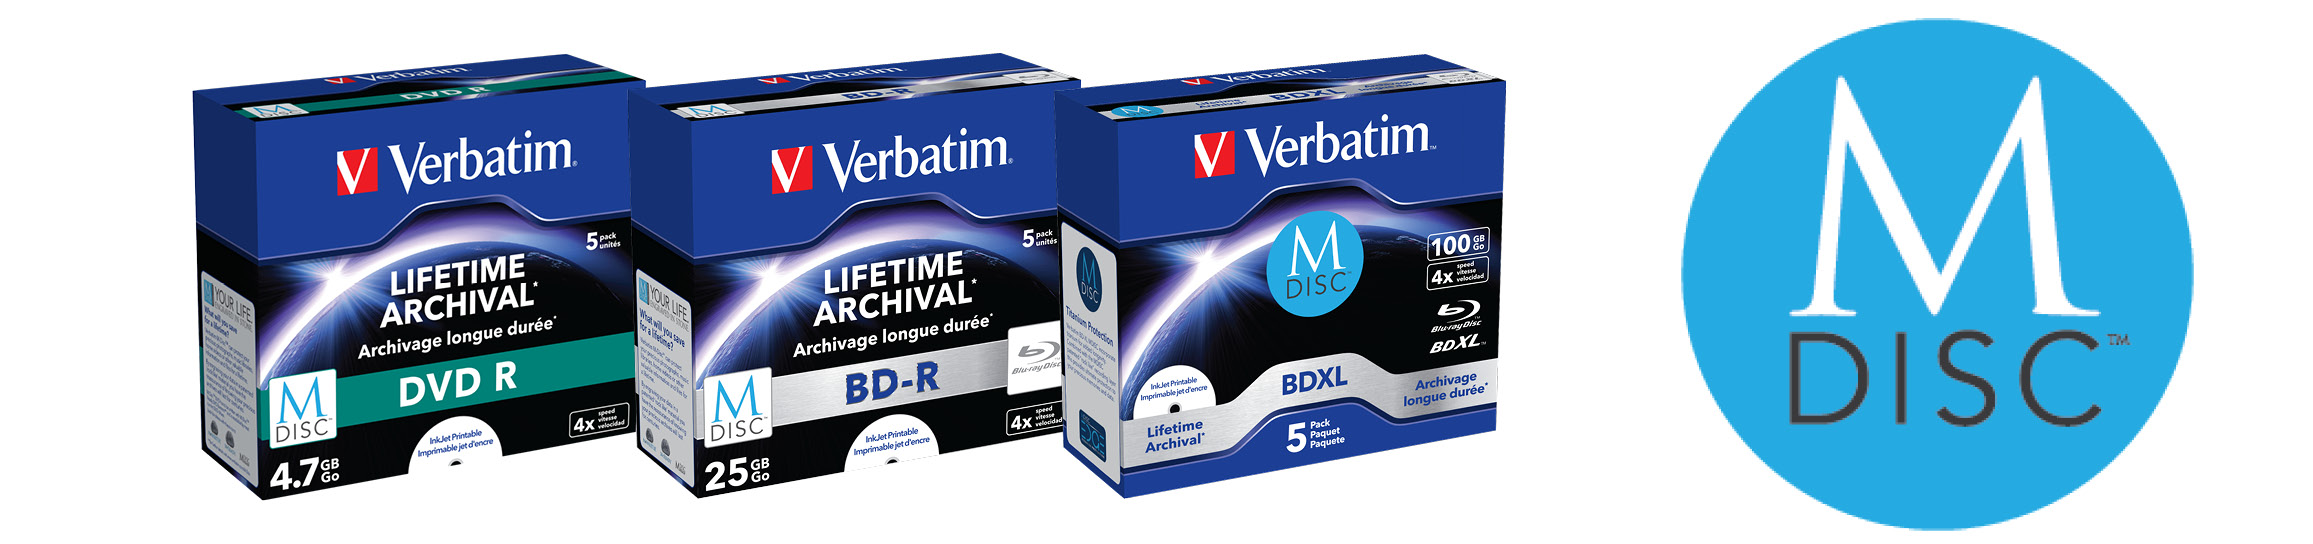 Verbatim MDISC Lifetime archival BDXL 100GB* - 5 pack jewel case